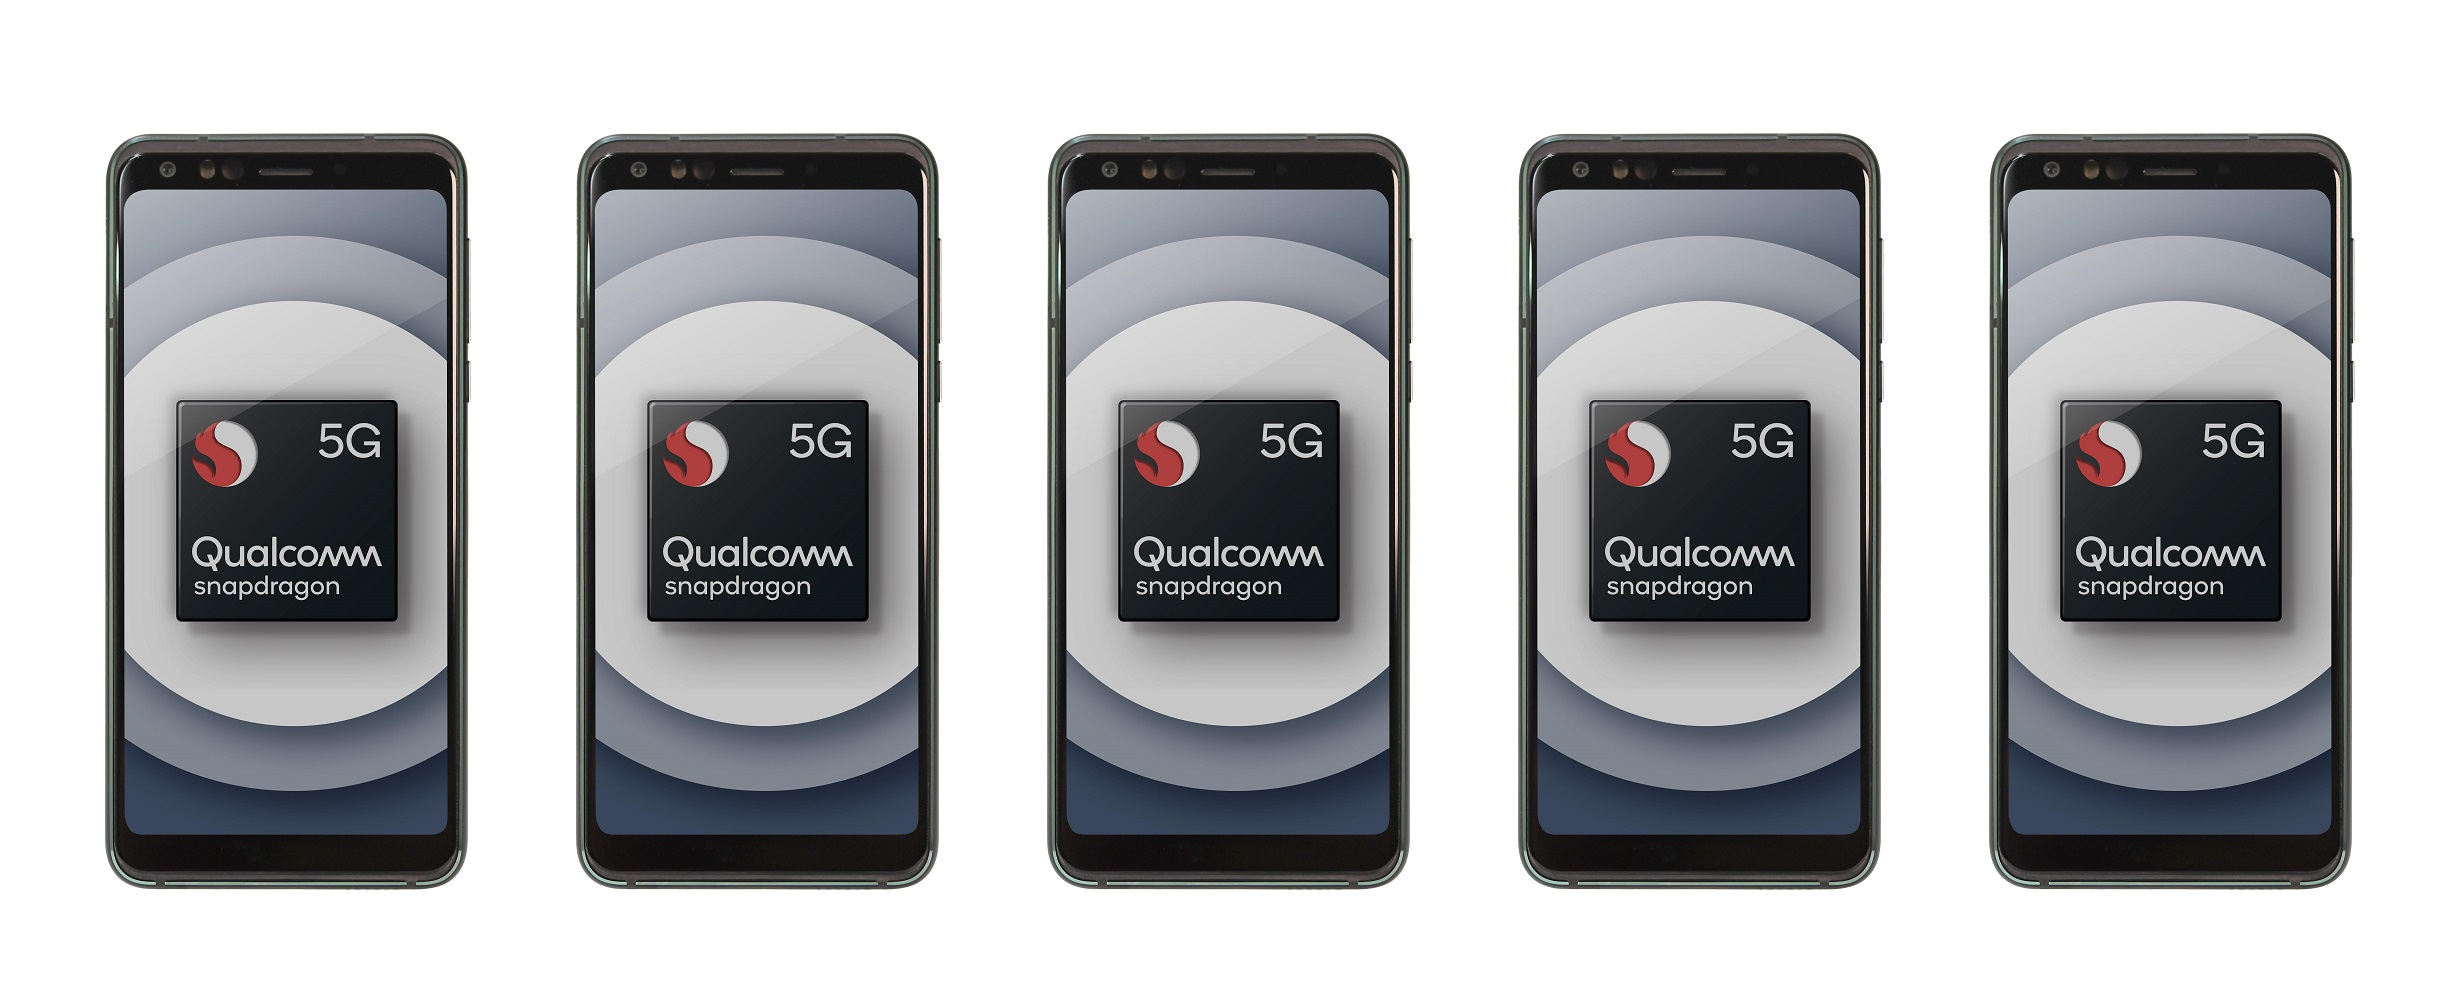 procesor Qualcomm Snapdragon 5G